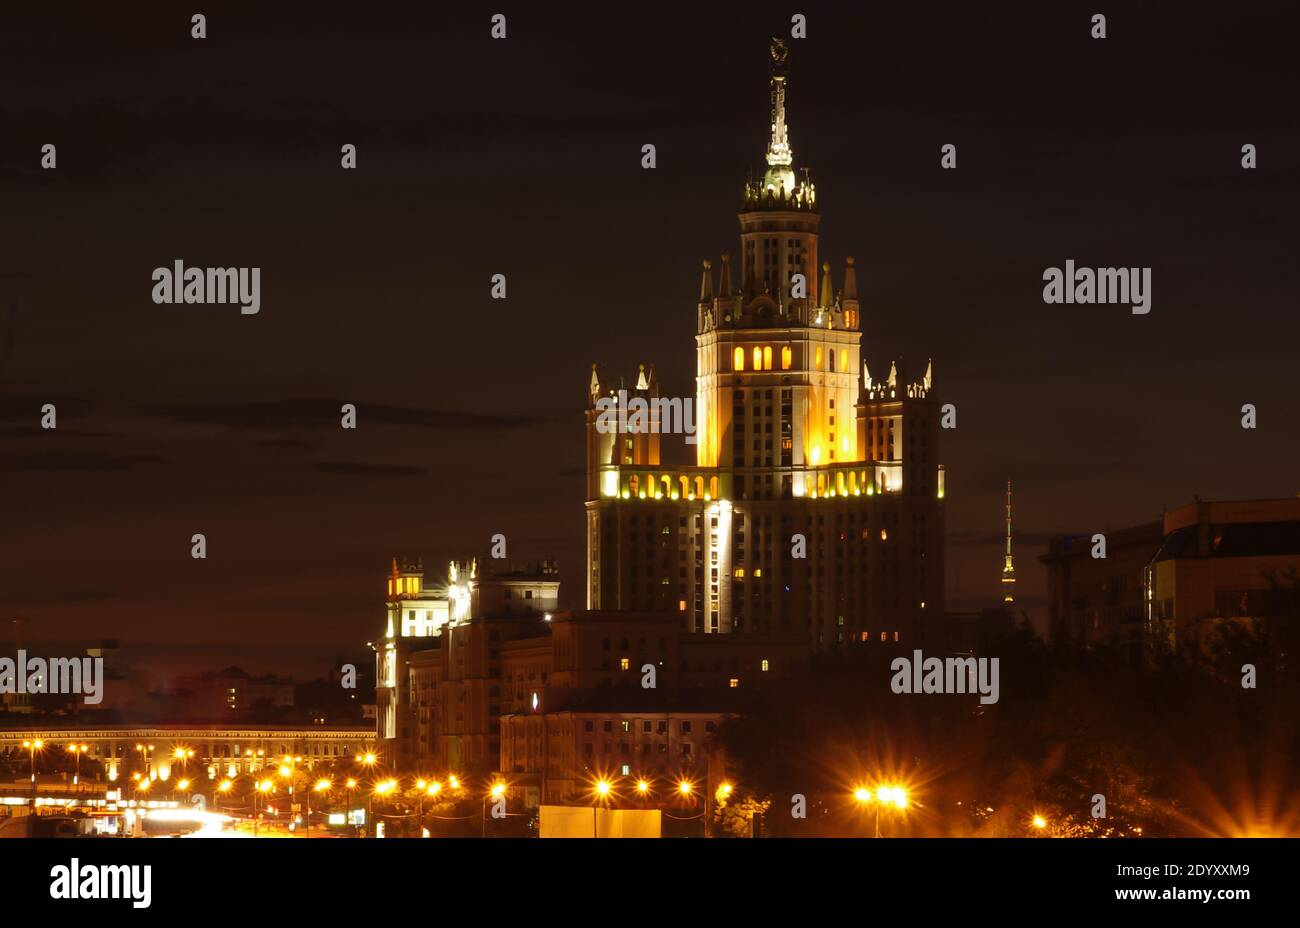 July 30, 2011, Moscow, Russia. Evening illumination at a Stalinist skyscraper on Kotelnicheskaya embankment in Moscow. Stock Photo